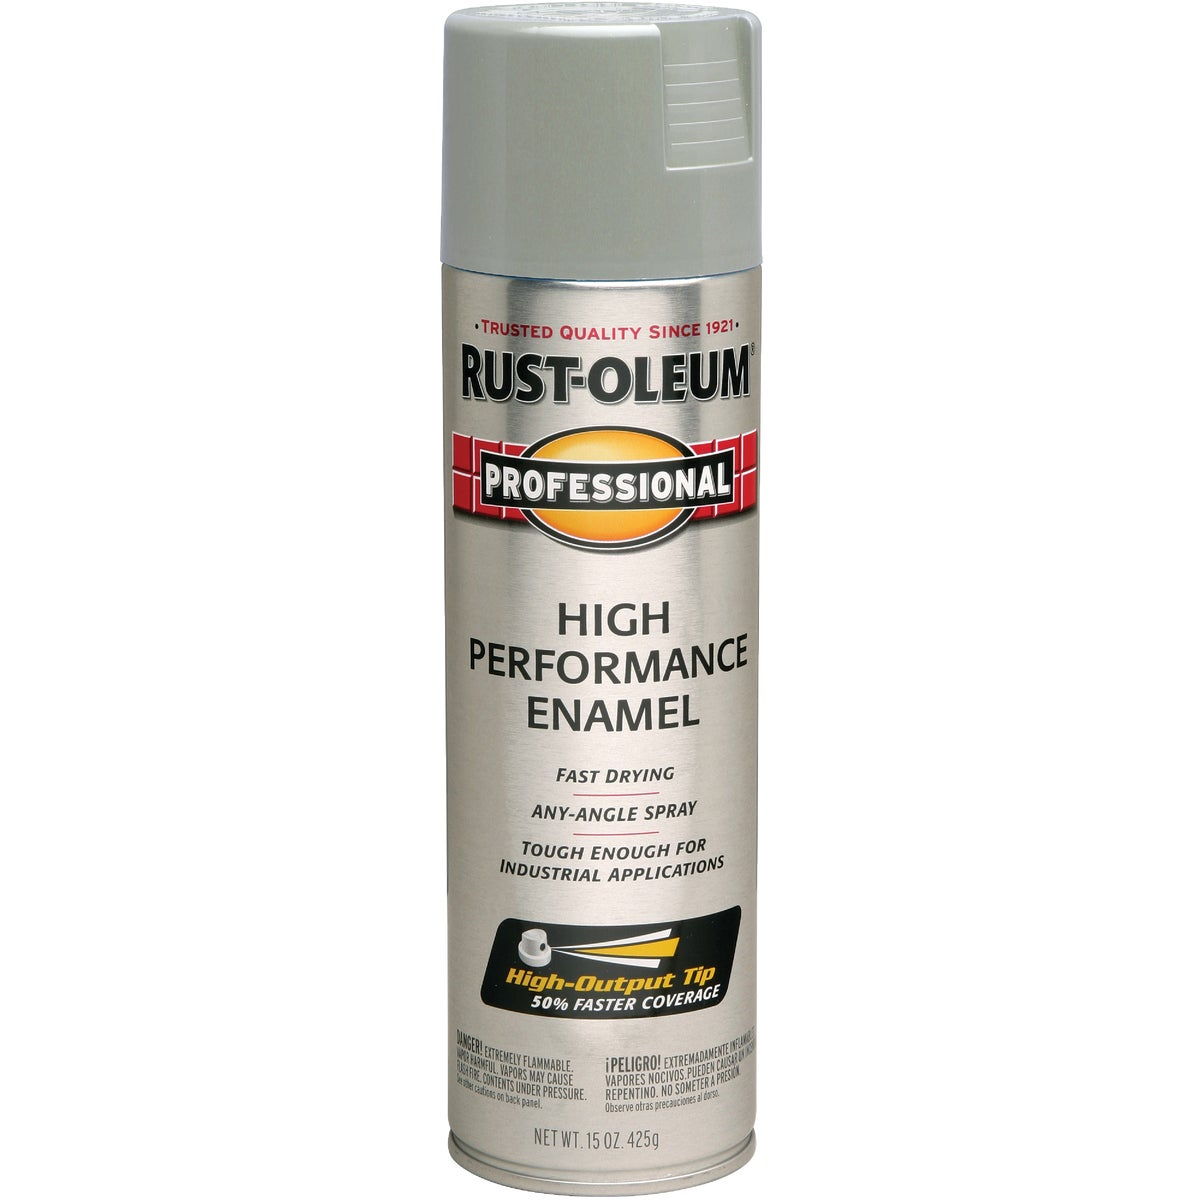 LTM GRAY PRO SPRAY PAINT - 7581-838 by Rustoleum